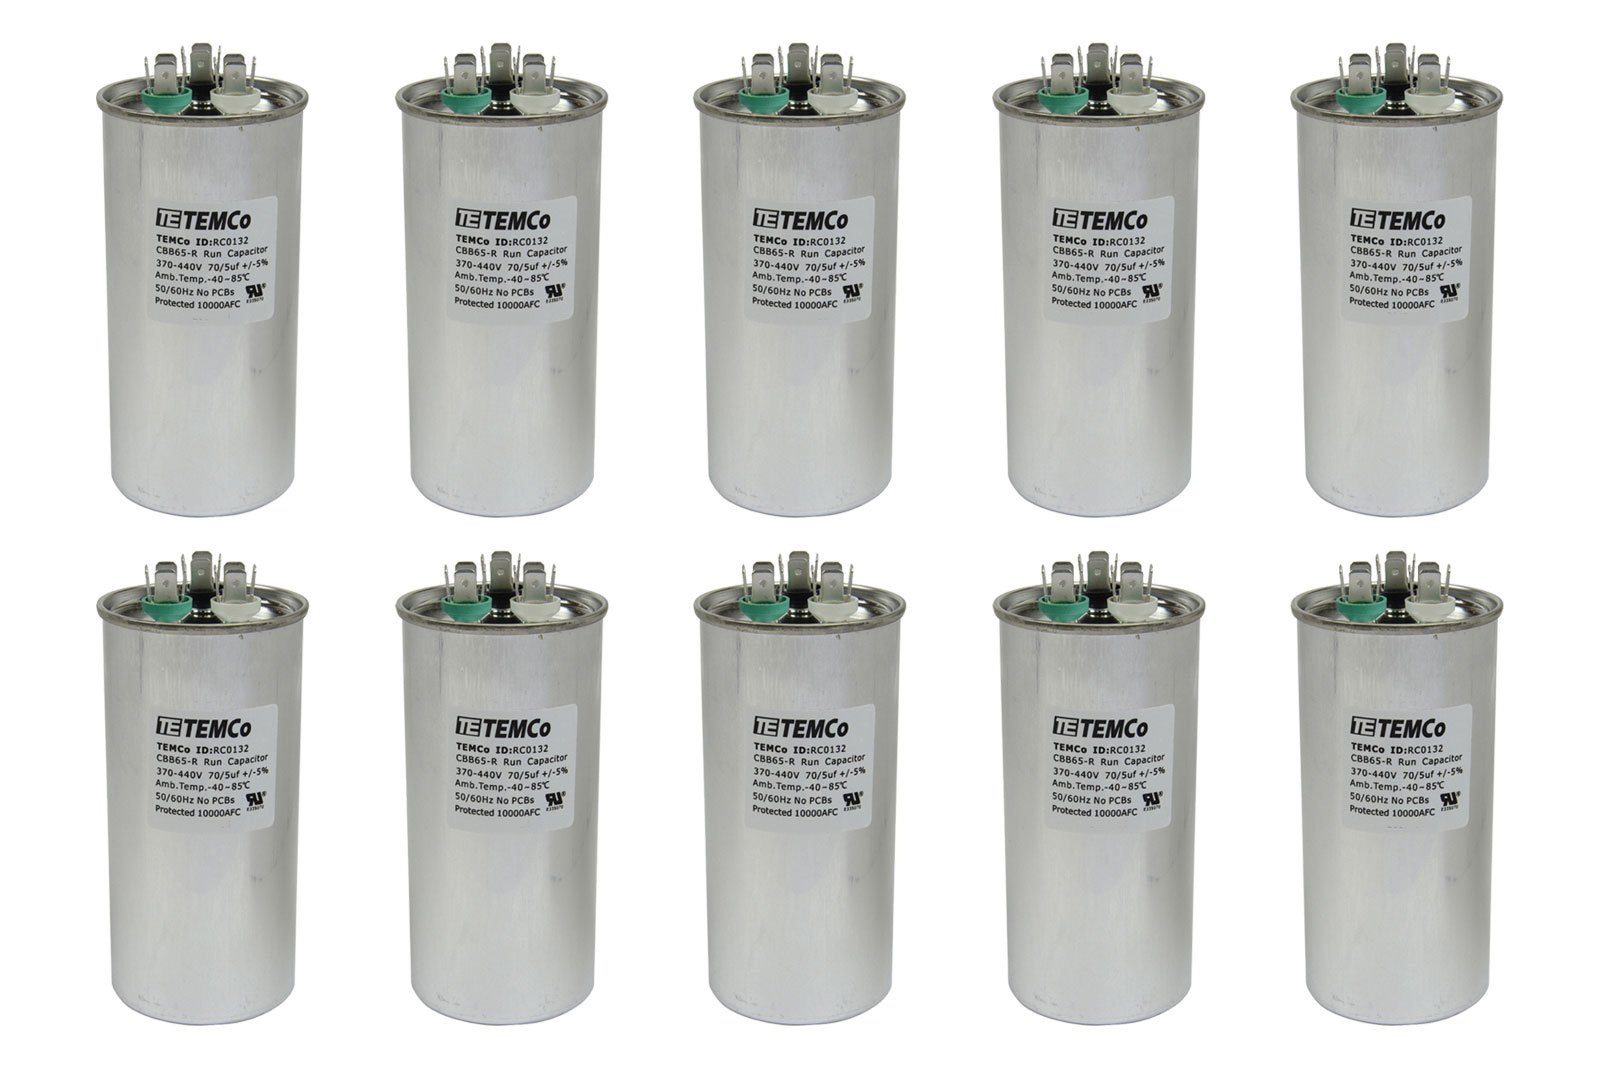 TEMCo 10 LOT Dual Run Capacitor RC0134-70/5 mfd 370 V 440 V VAC volt 70+5 uf AC Electric Motor HVAC